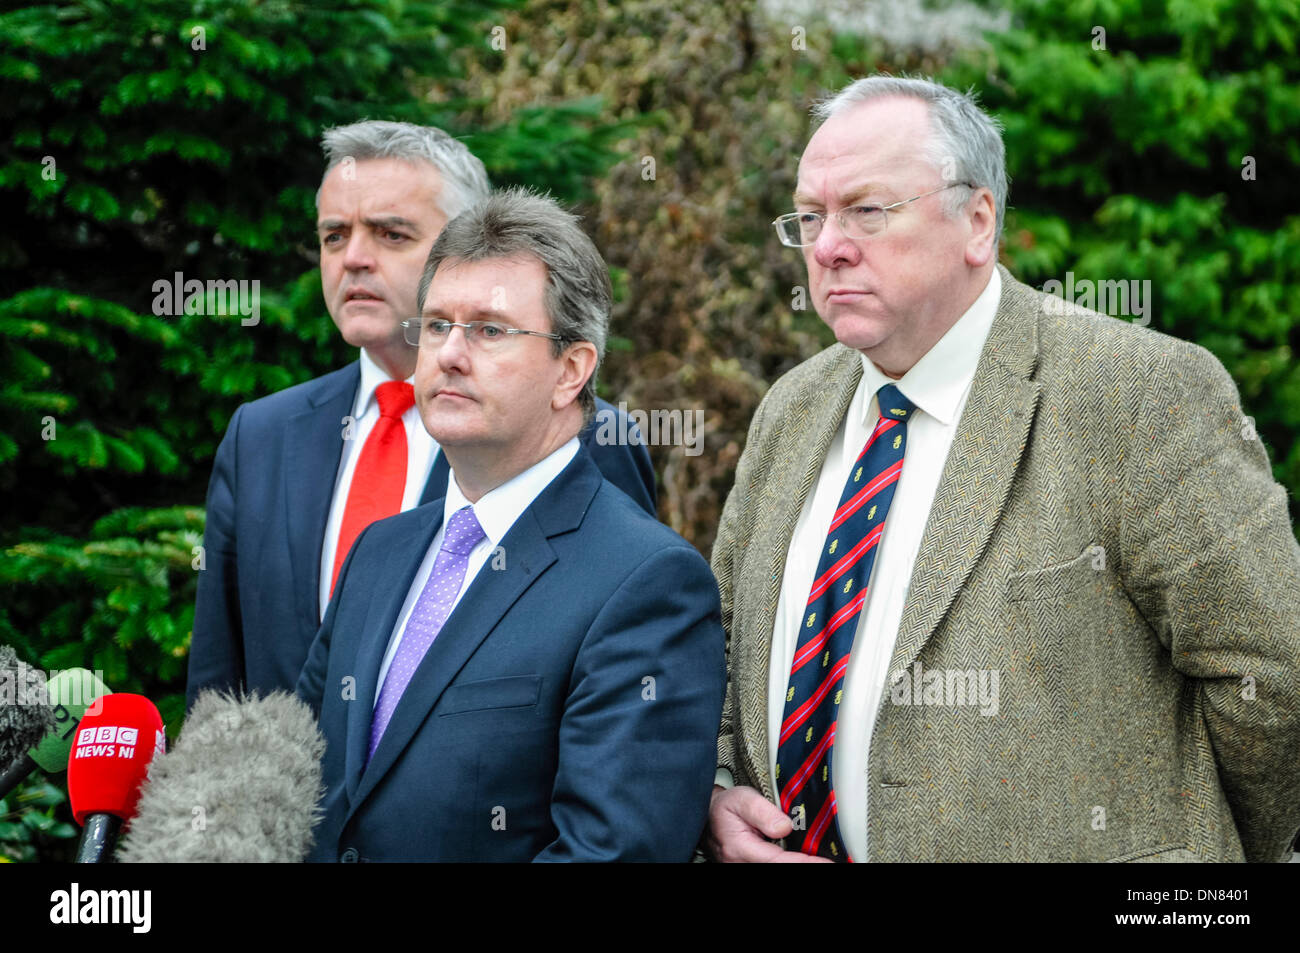 Belfast, Northern Ireland. 20 Dec 2013 - Jonathan Bell, Jeffrey Donaldson and Mervyn Gibson arrive to represent the DUP at the Haass talks over the Northern Ireland issues for the future. Credit:  Stephen Barnes/Alamy Live News - Stock Image